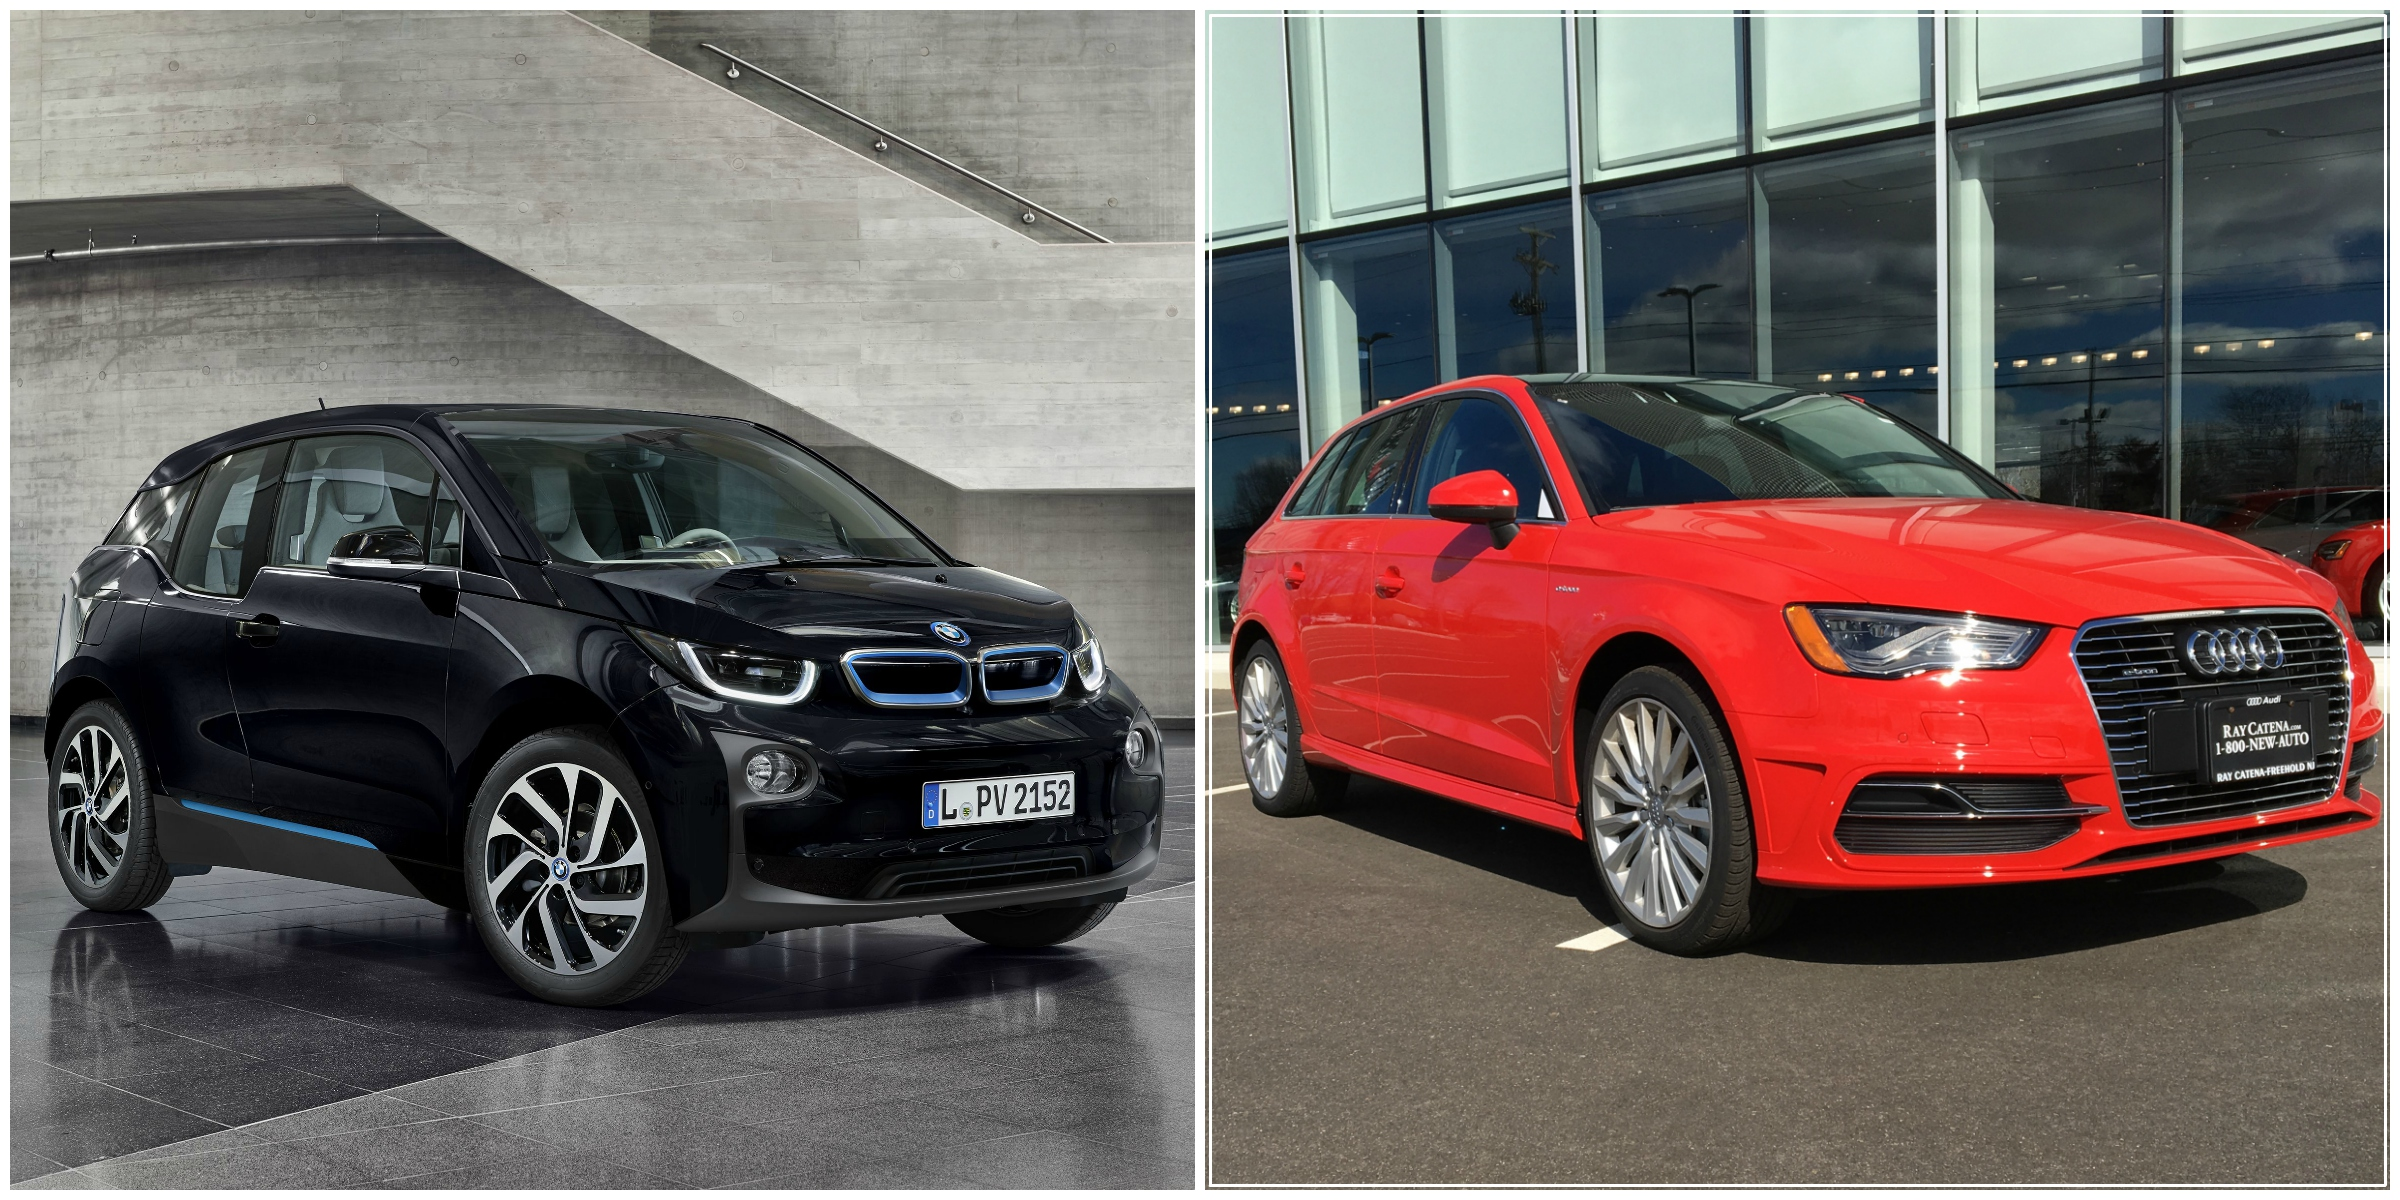 BMW i3 vs Audi A3 e tron